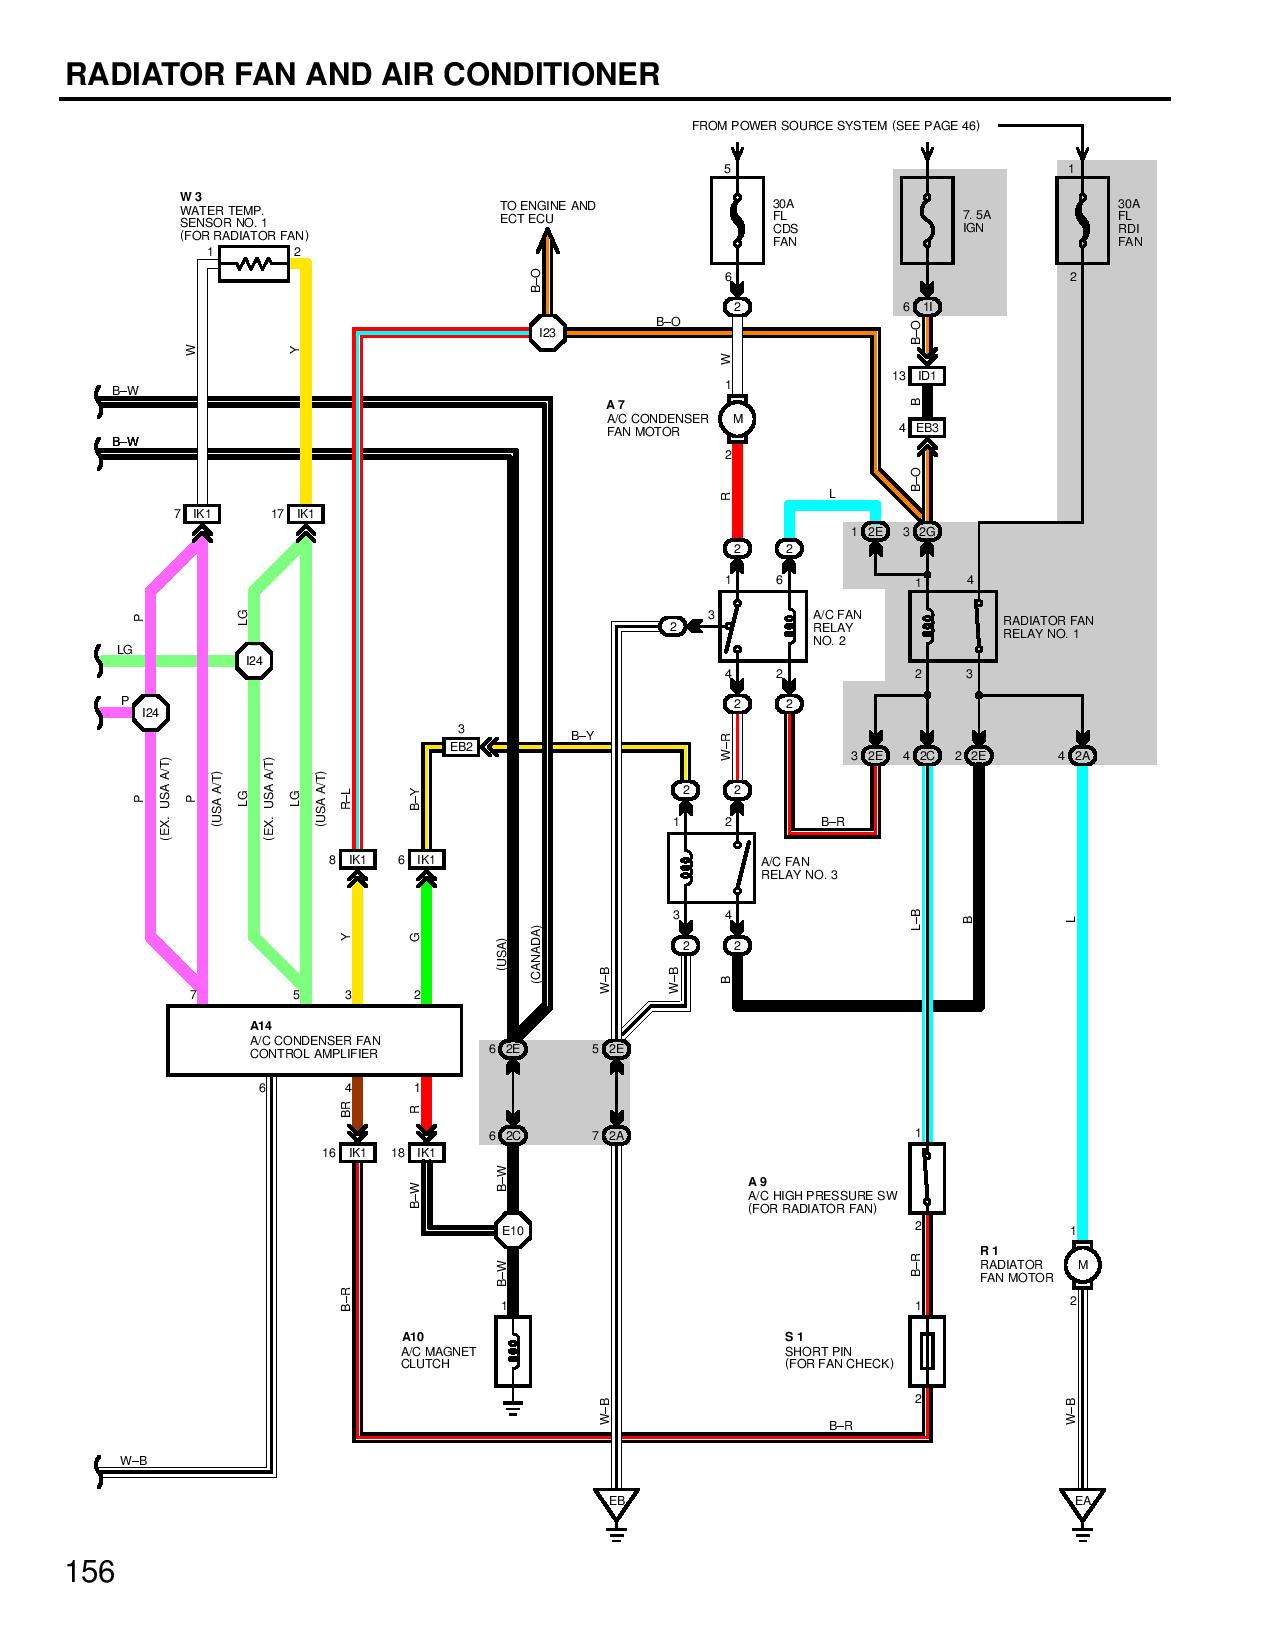 fuse box daihatsu espass wiring diagram led light bar wiring harness diagram wiring diagram daihatsu espass wiring